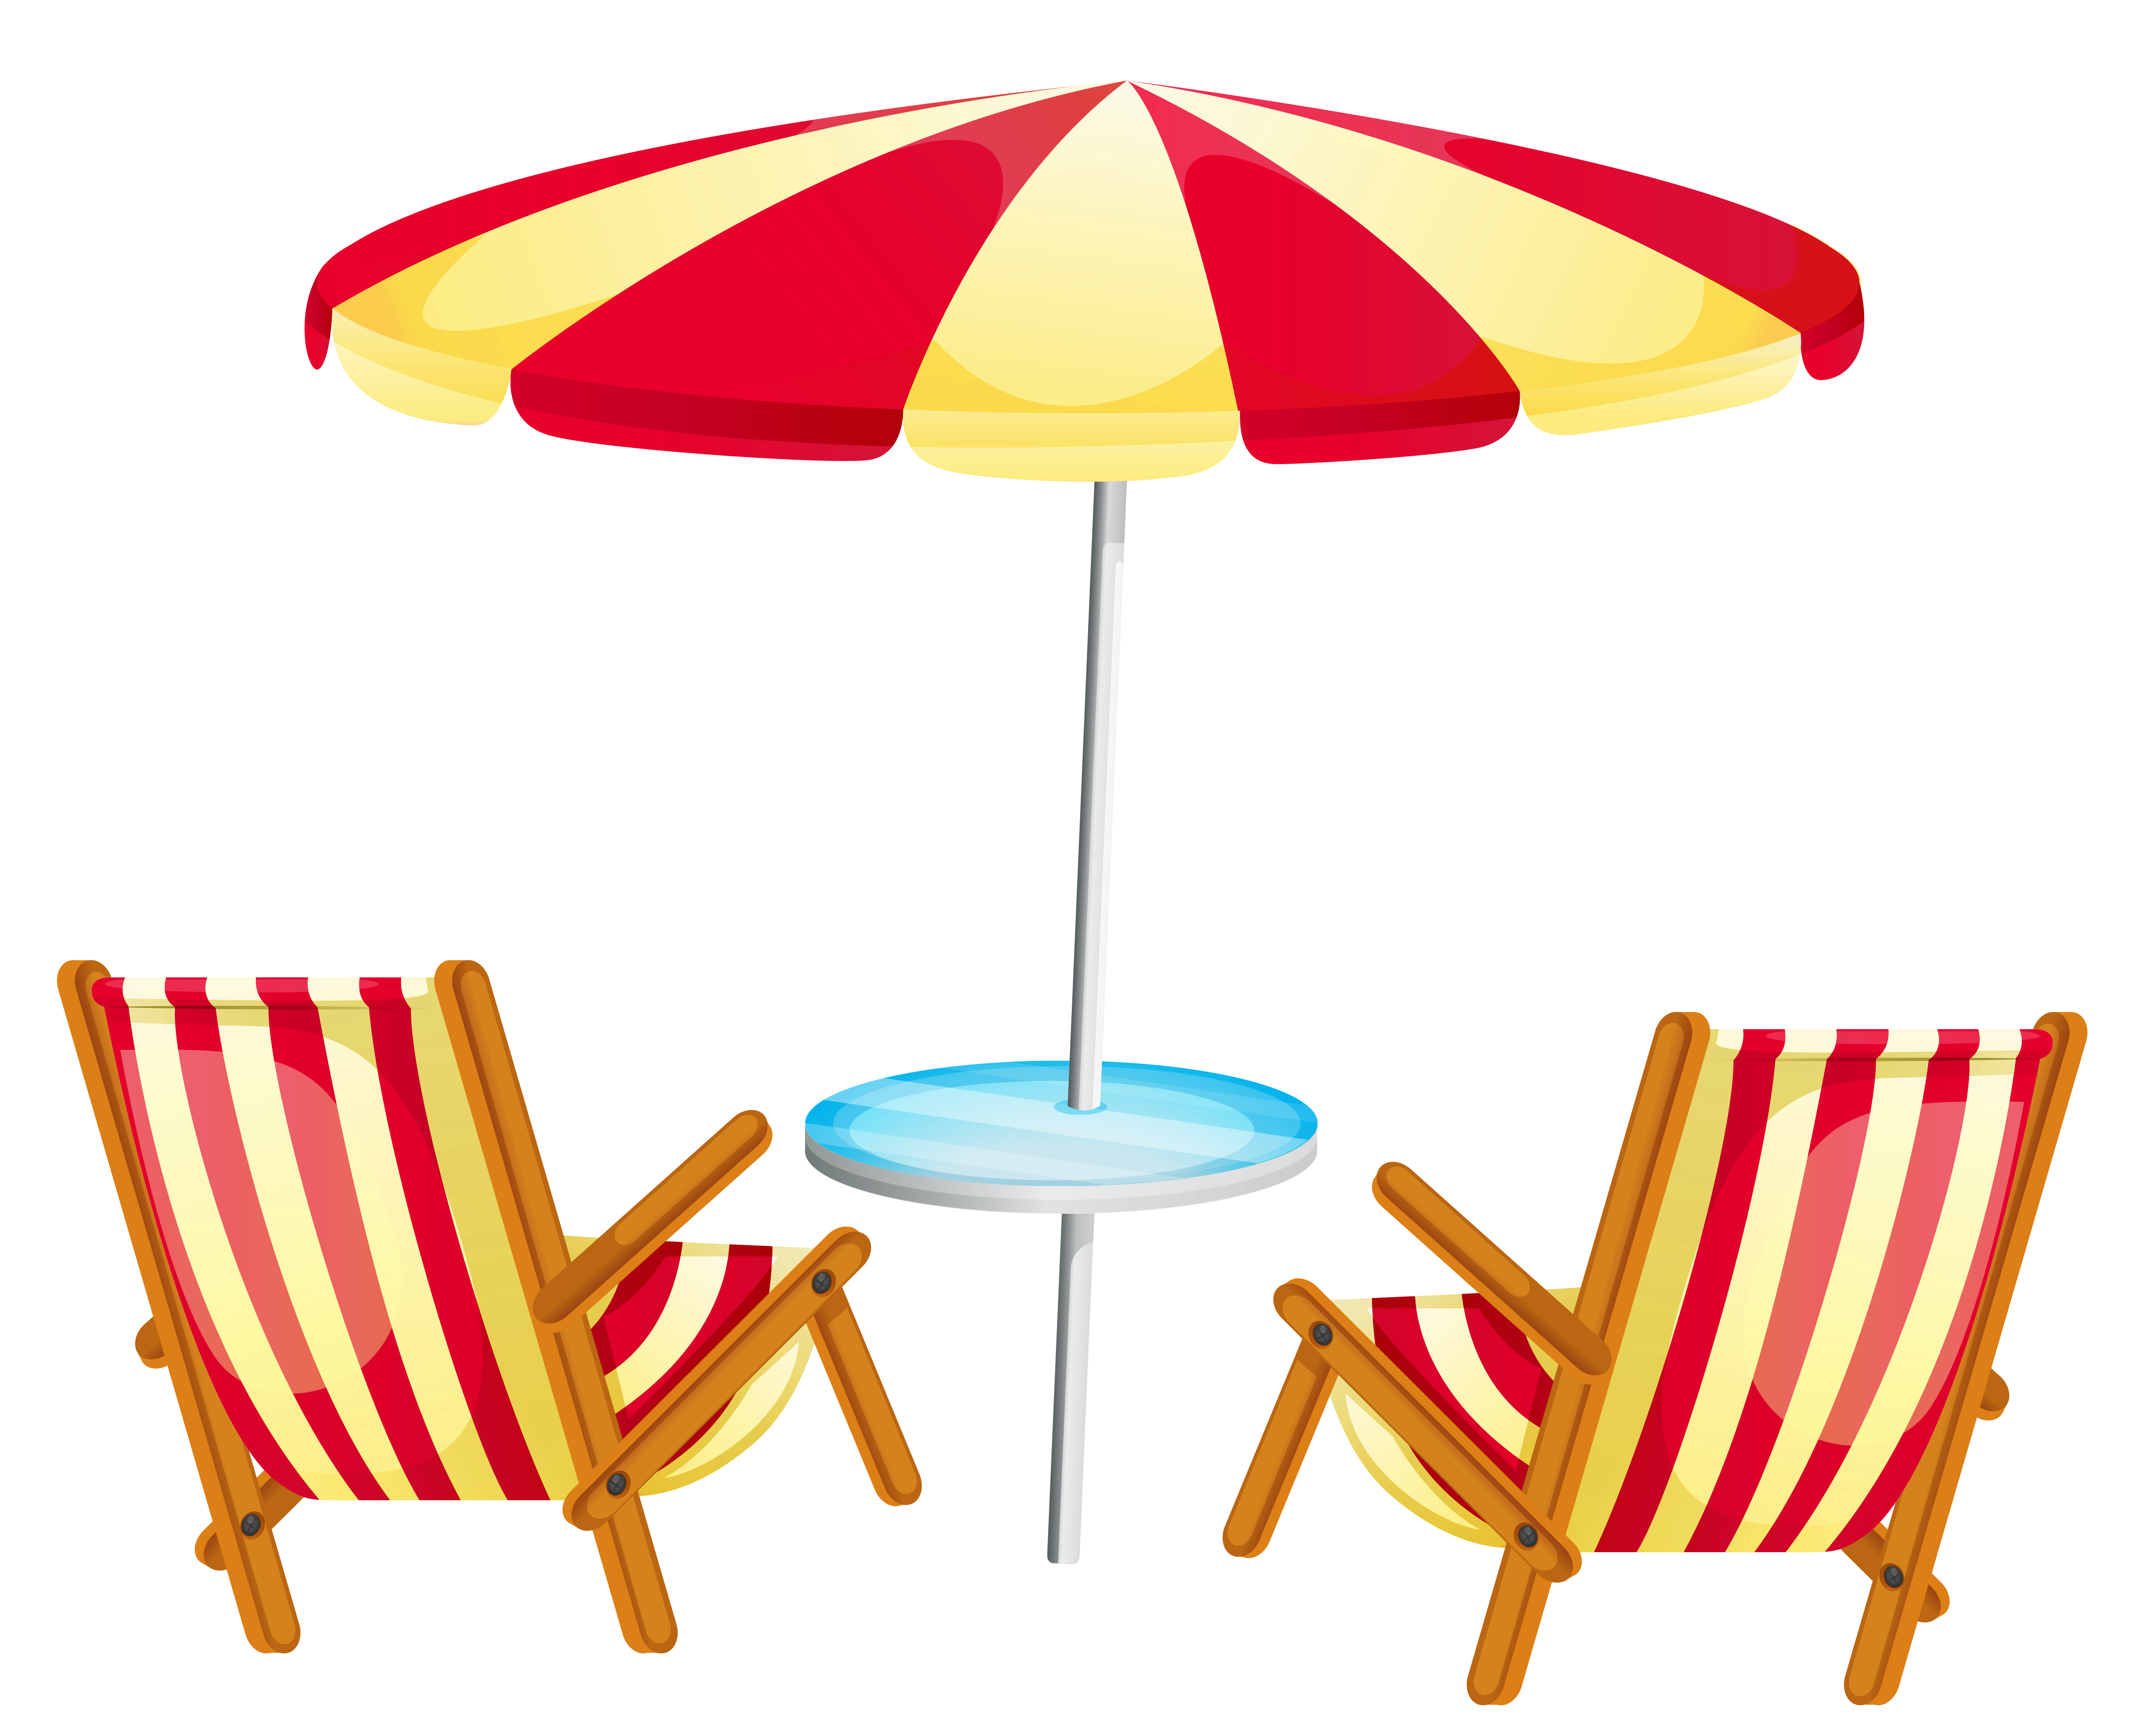 Transparent beach umbrella with. Clipart chair piano